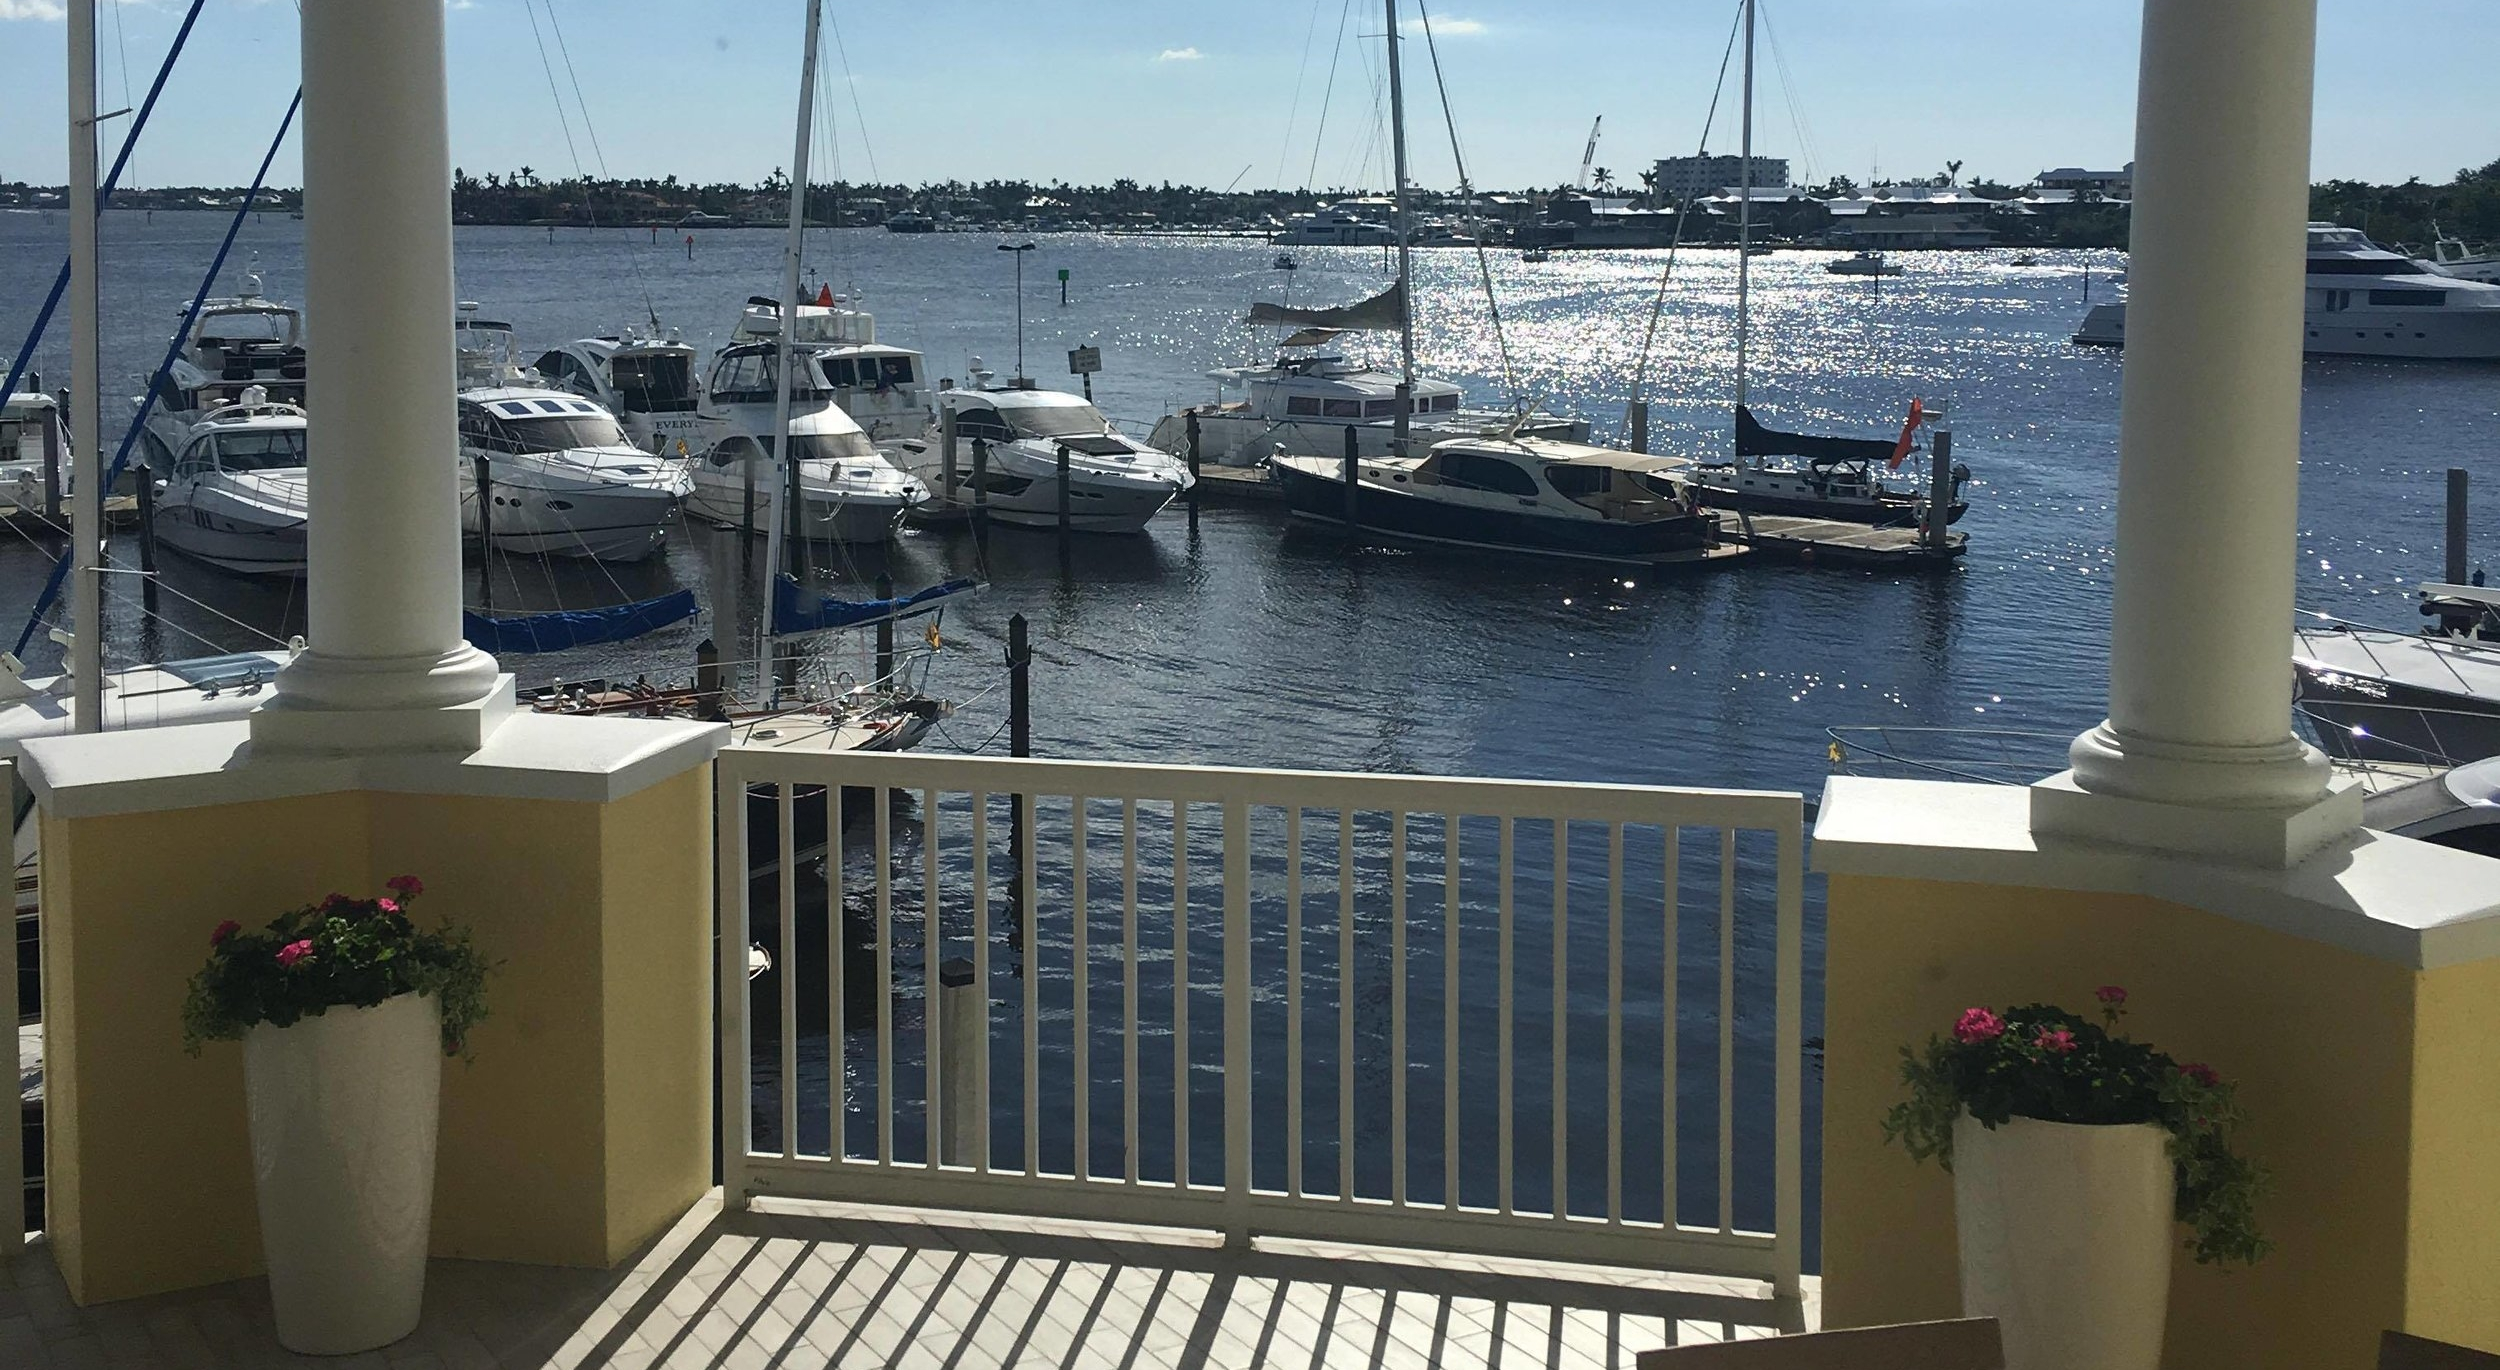 The view from the Naples Sailing & Yacht Club